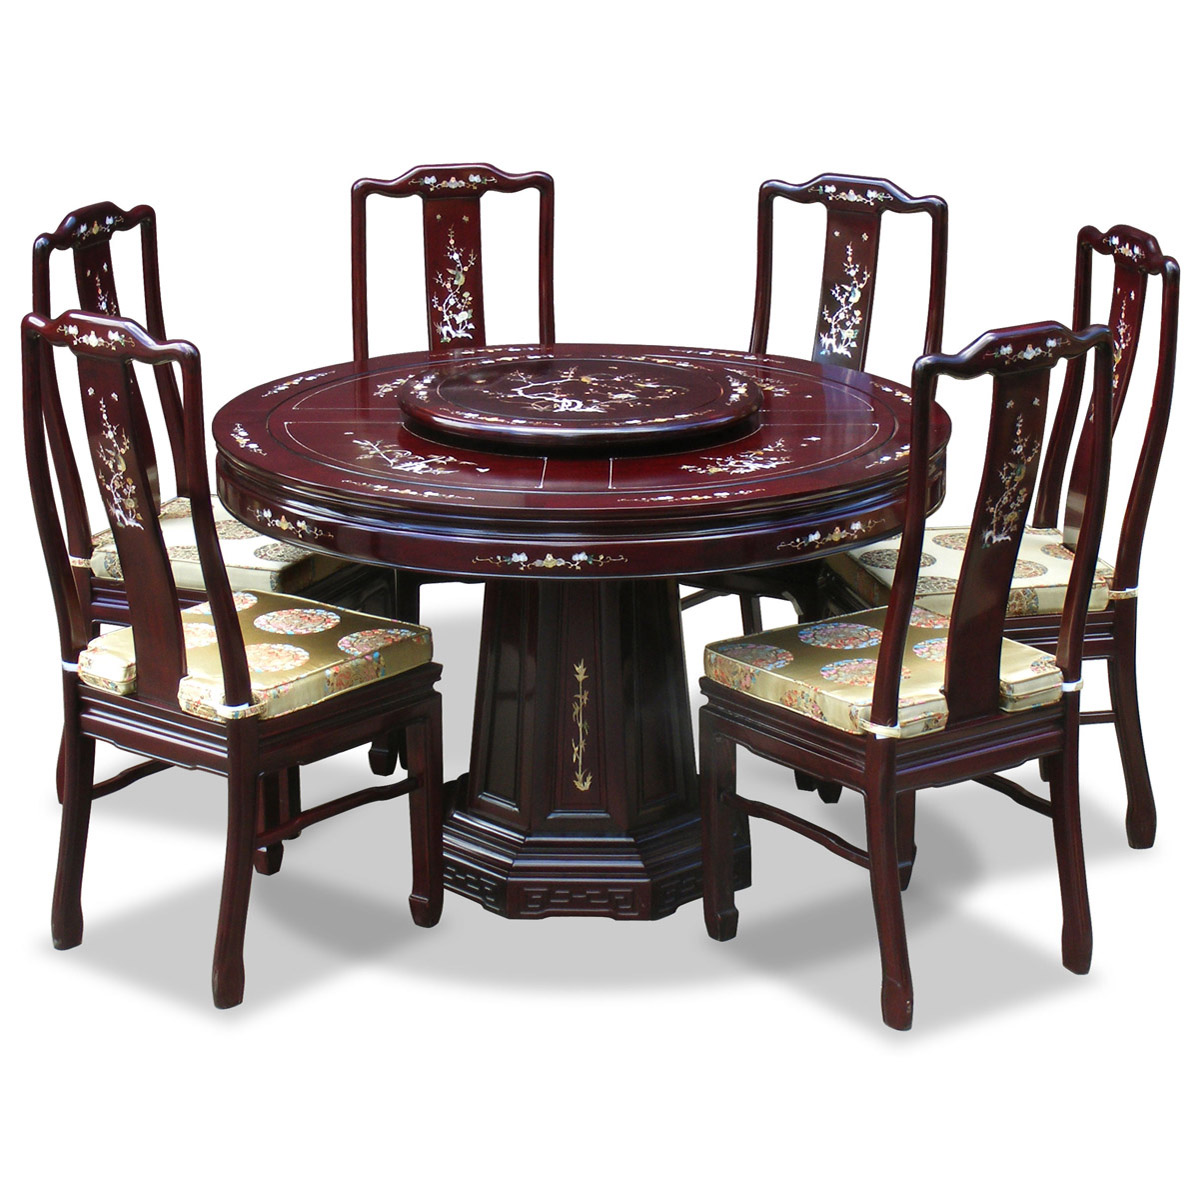 Round Dinner Table For 6: Round Dining Tables For 6